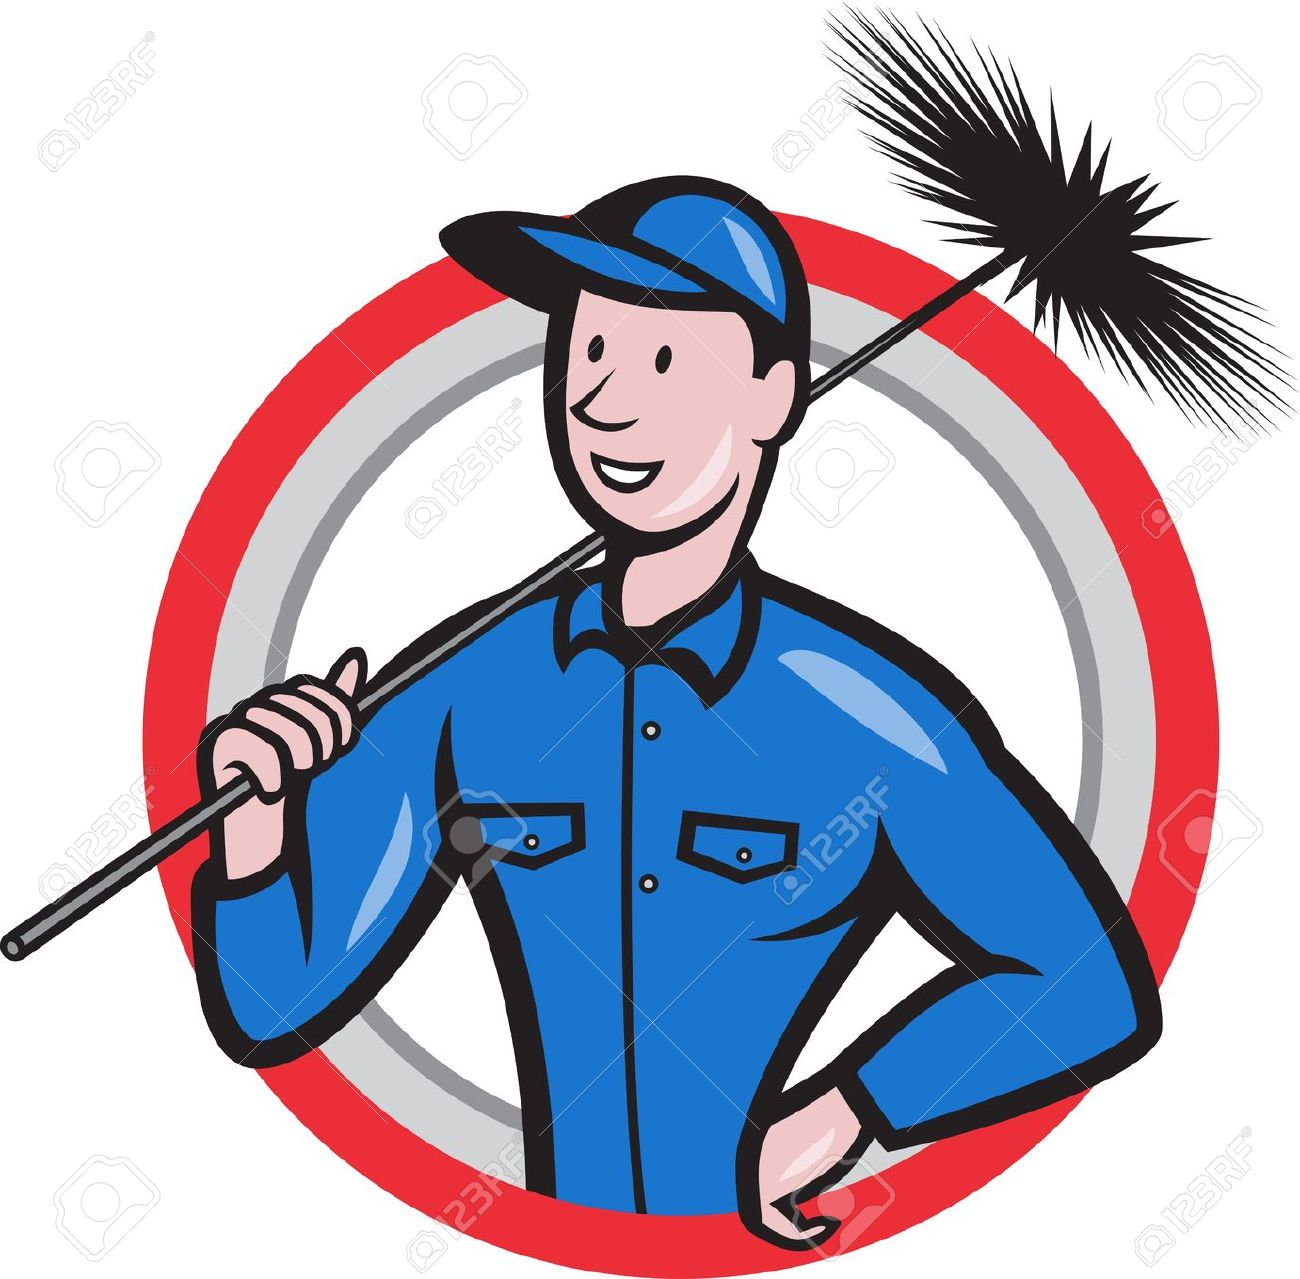 Illustration Of A Chimney Sweeper Cleaner Worker With Sweep Broom.